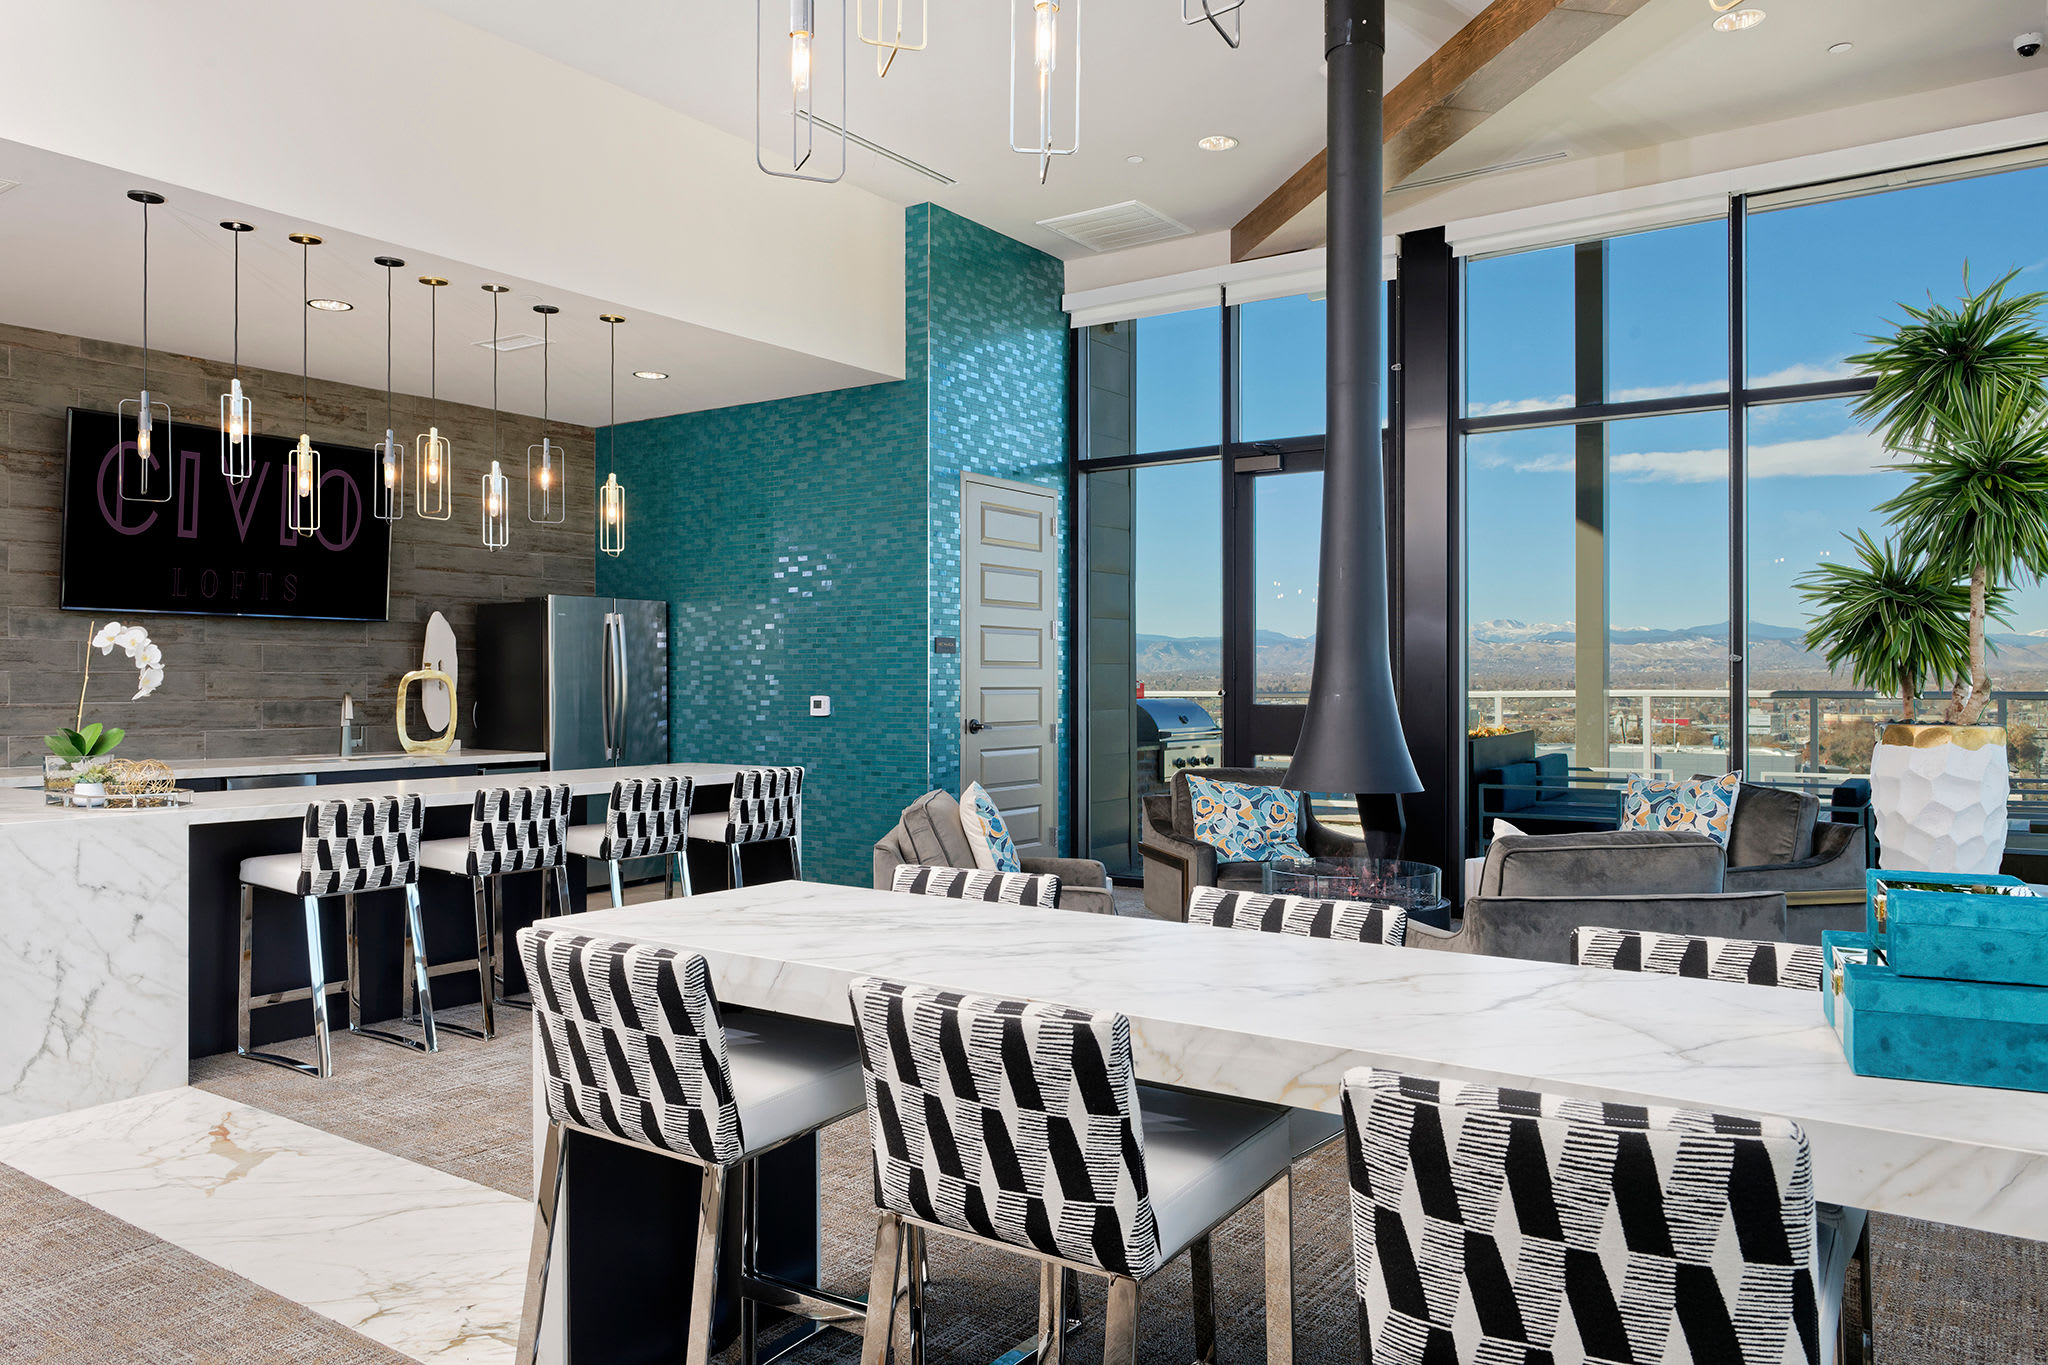 Bar seating with a view at the lounge area at Civic Lofts | Luxury Apartments in Downtown Denver, Colorado